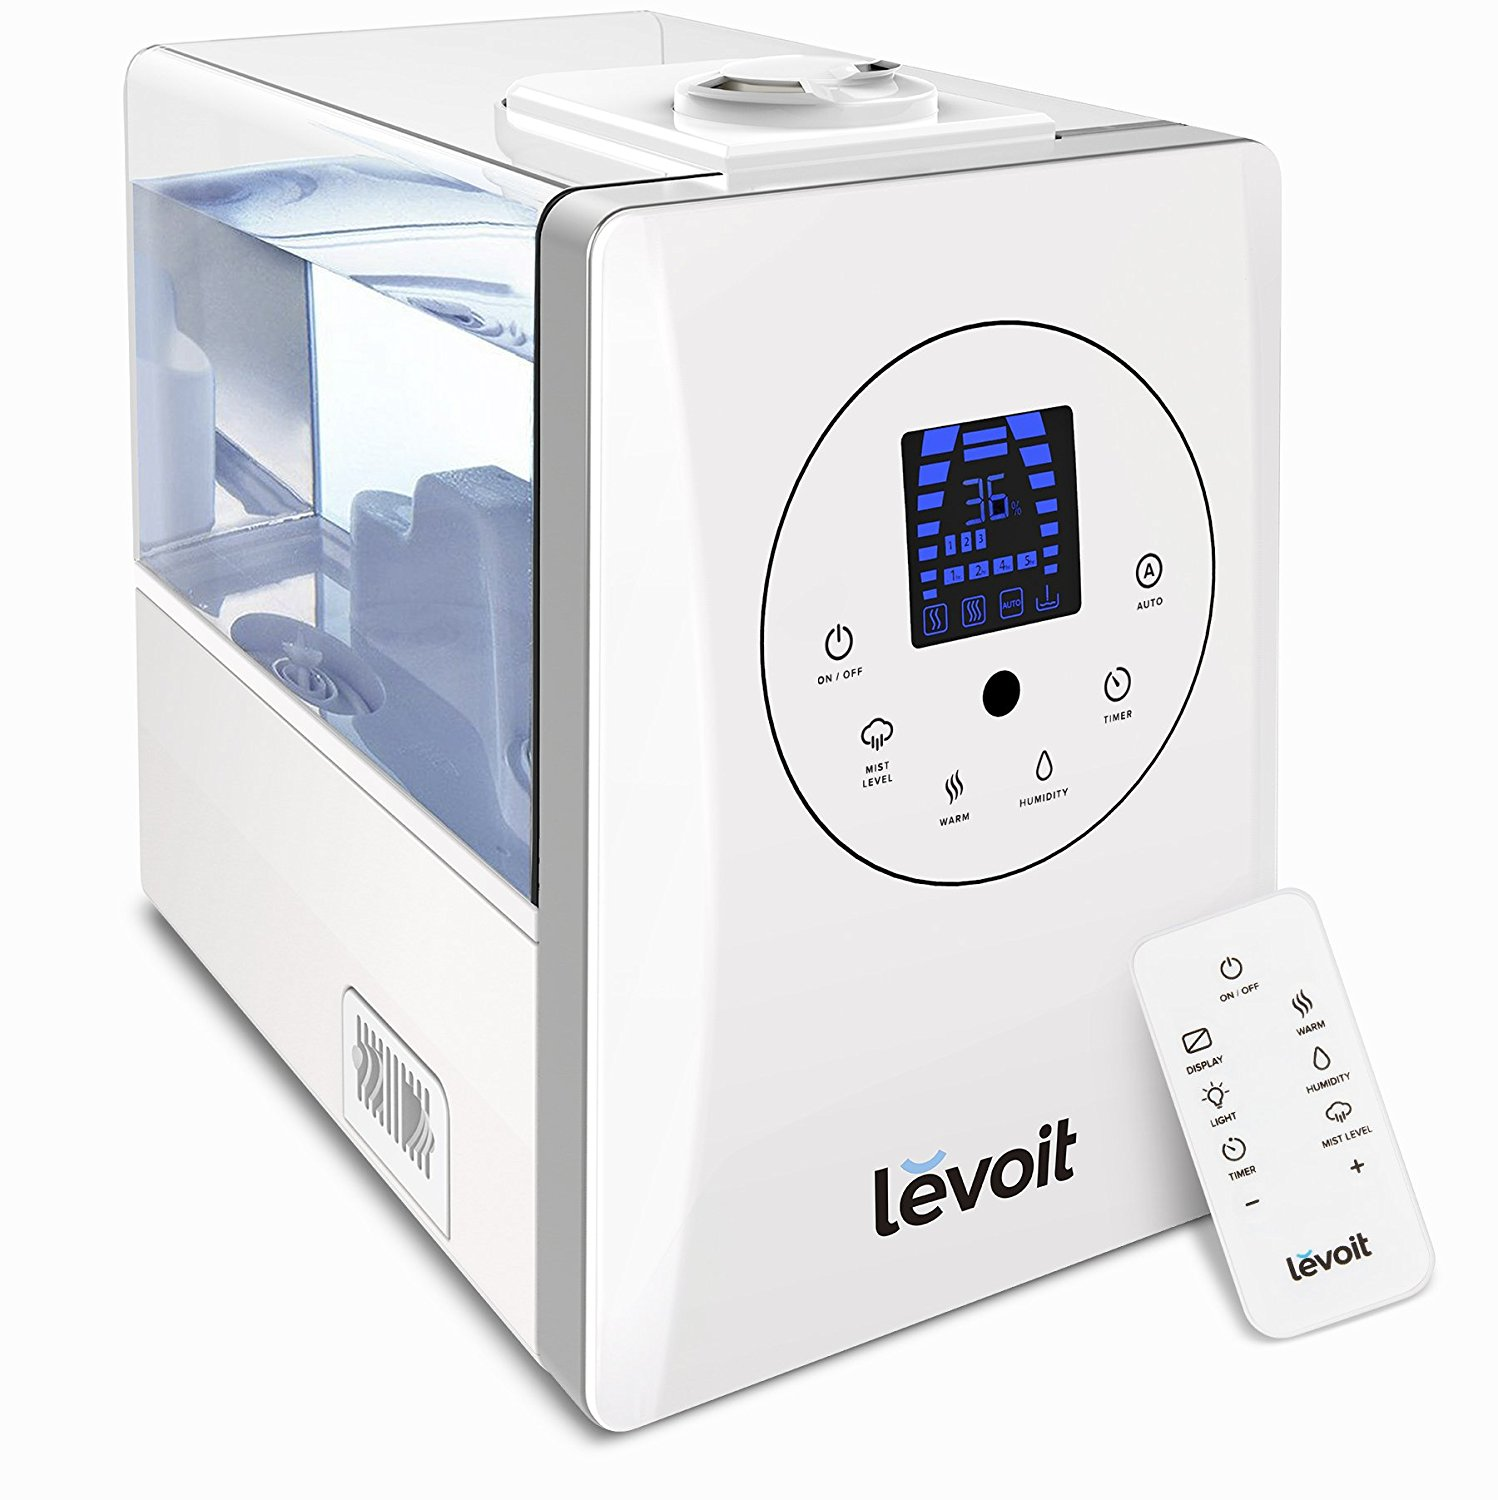 Levoit 6l humidifier -best humidifier for condo